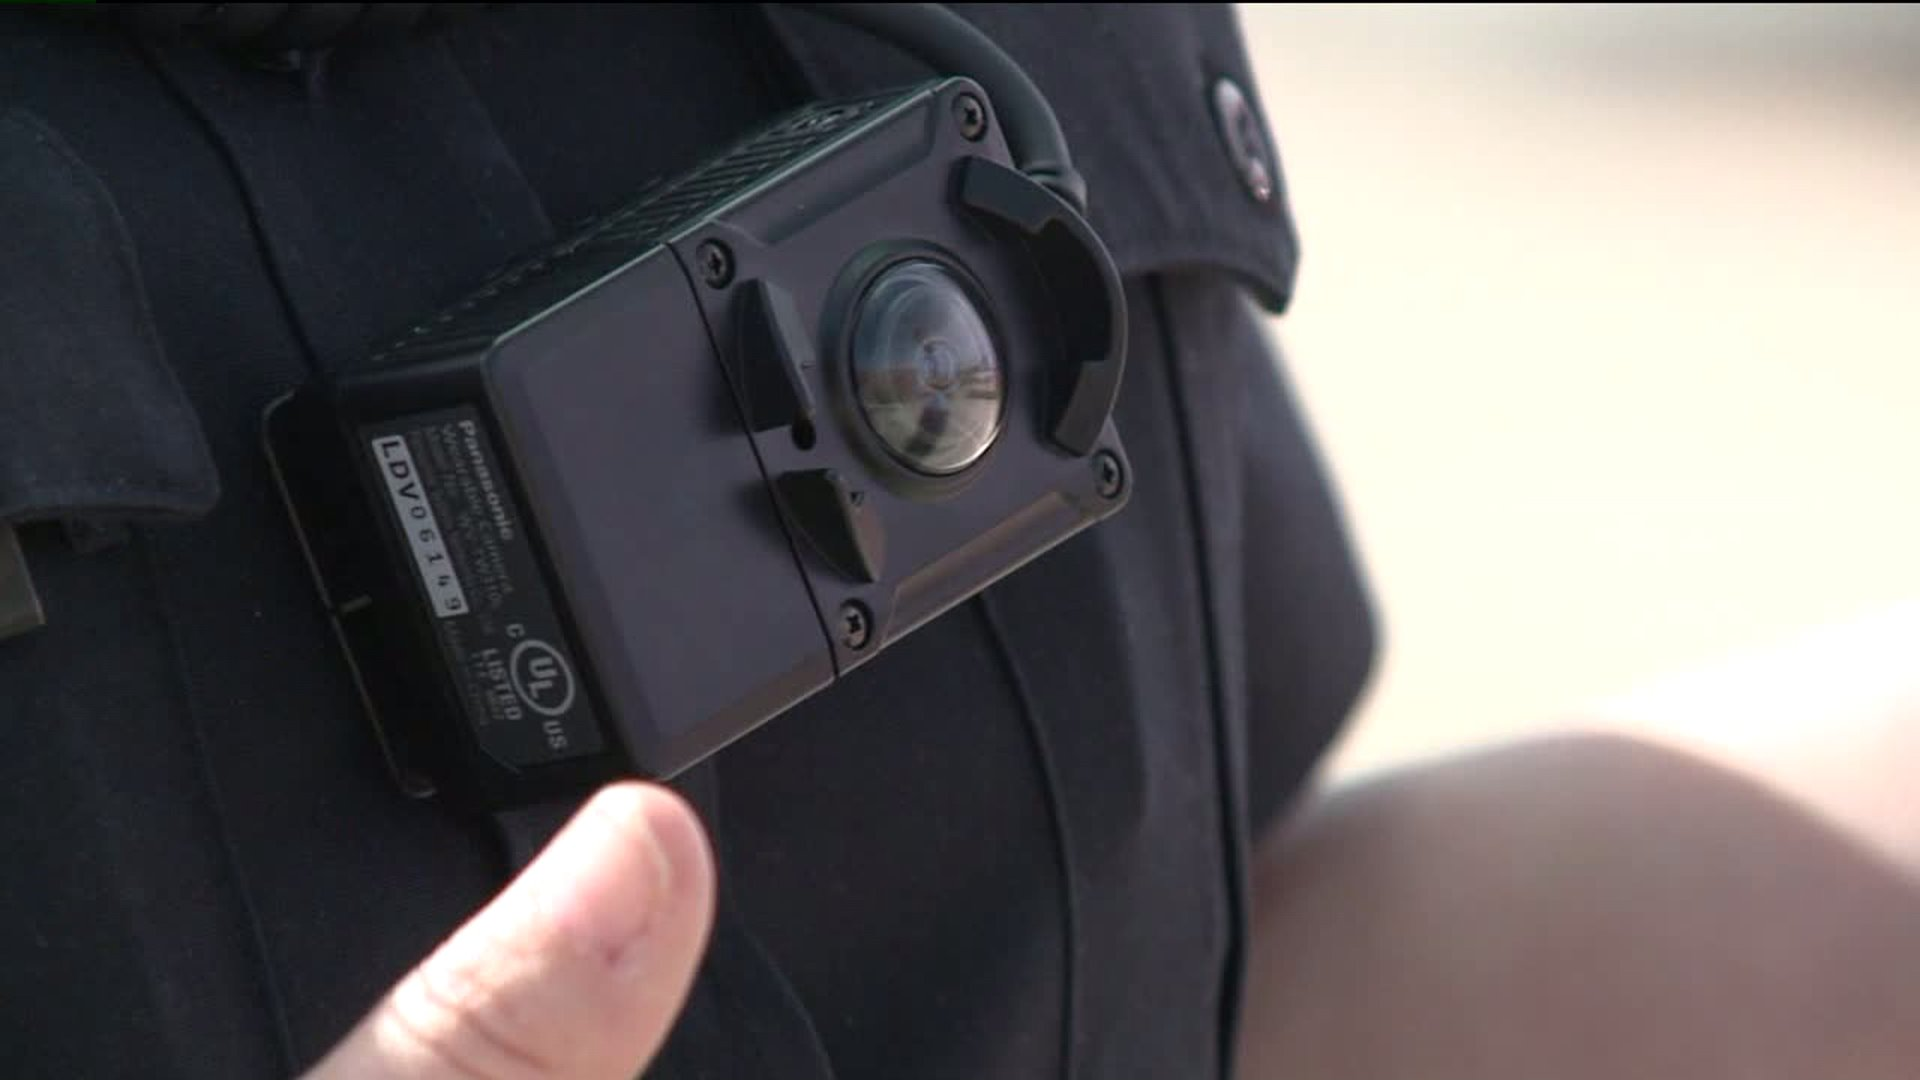 Body camera on police officer in Parker, Colo